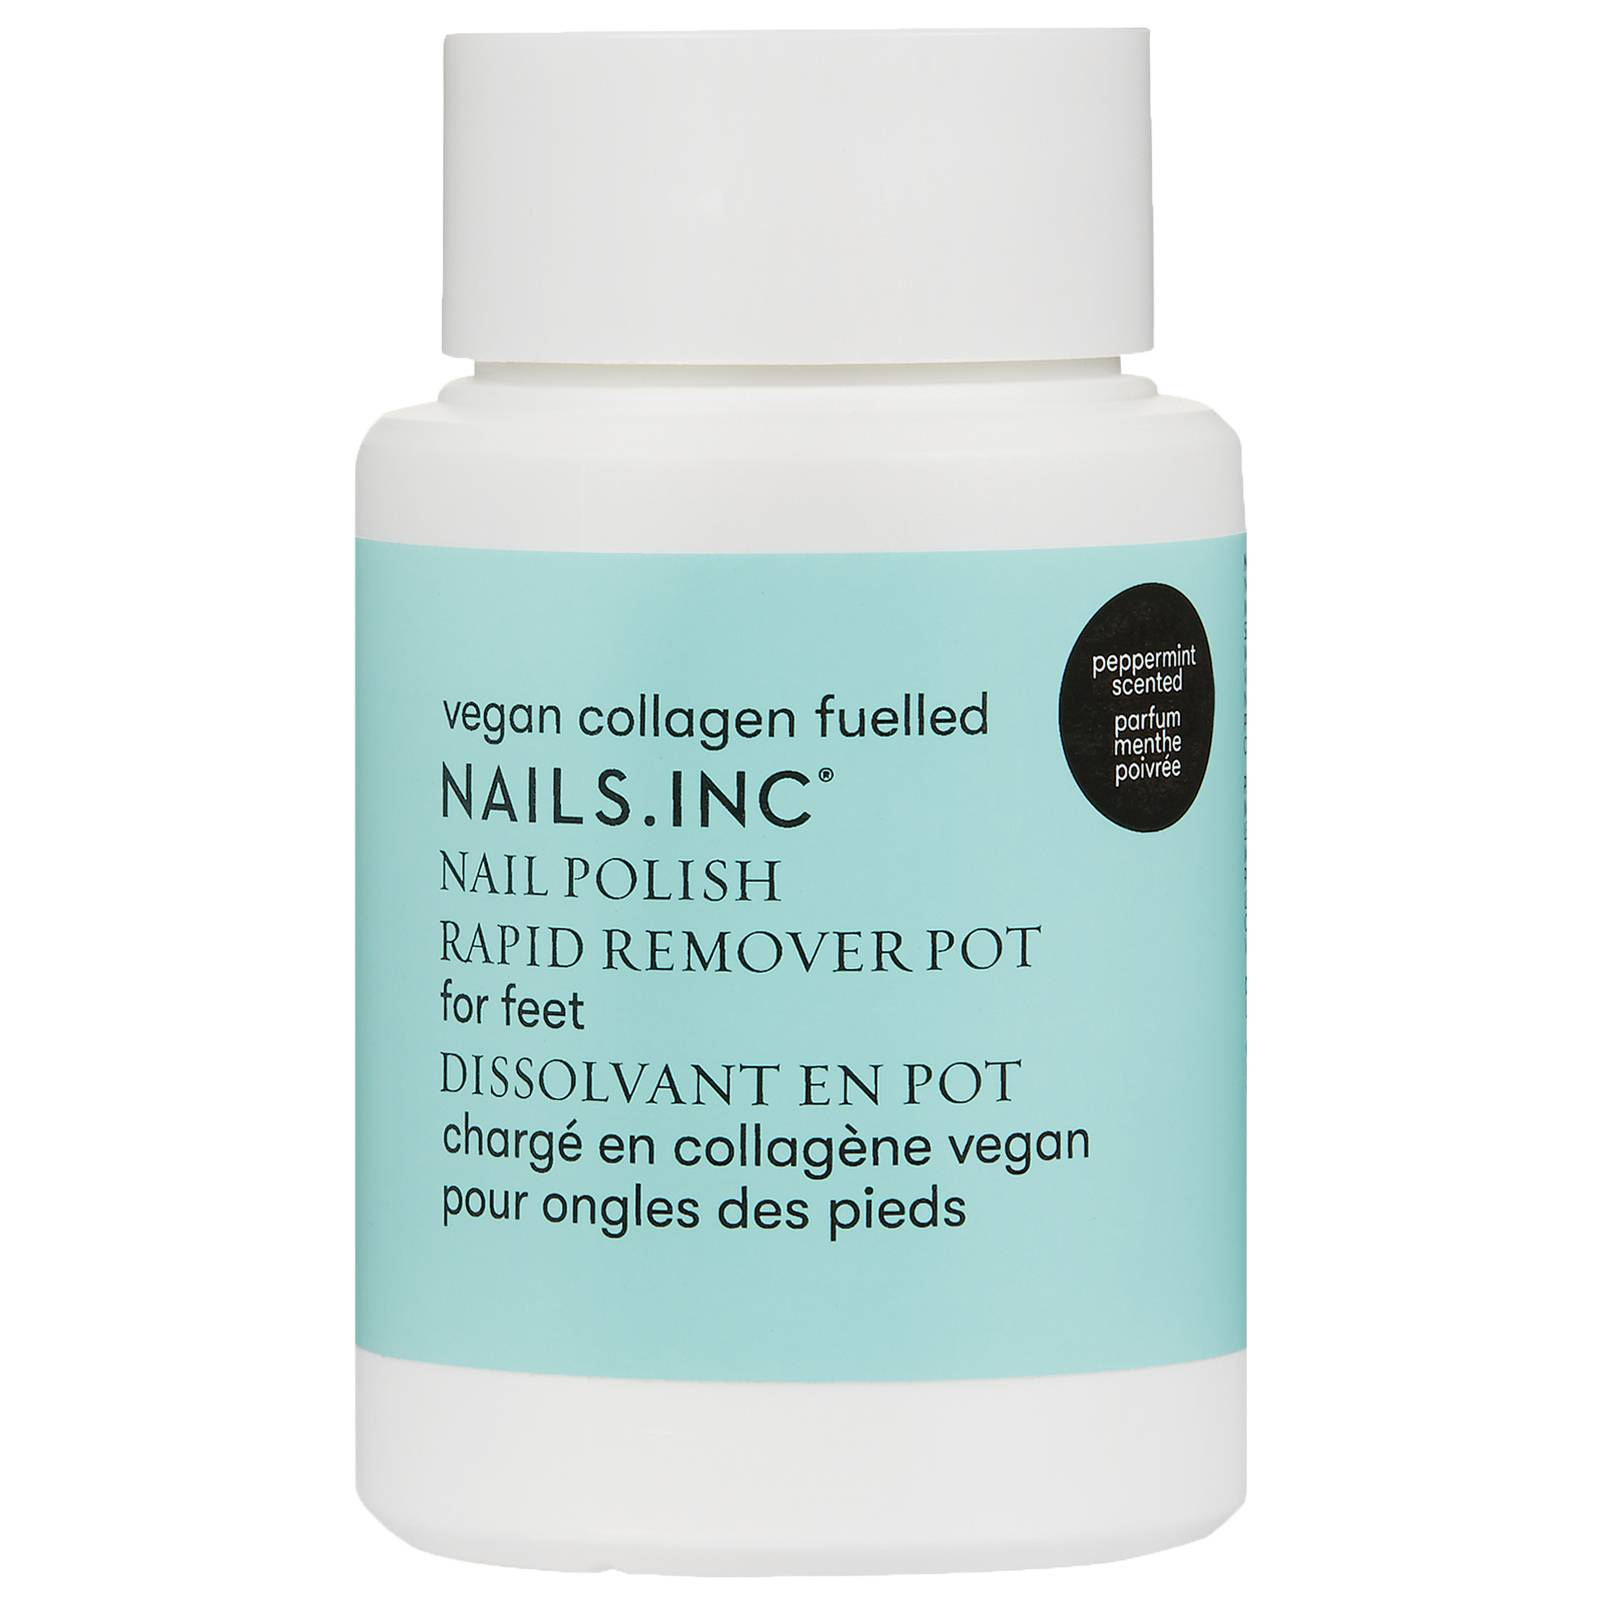 NAILS.INC - Nail Polish Remover Vegan Collagen Fuelled Rapid Remover Pot For Feet for Women